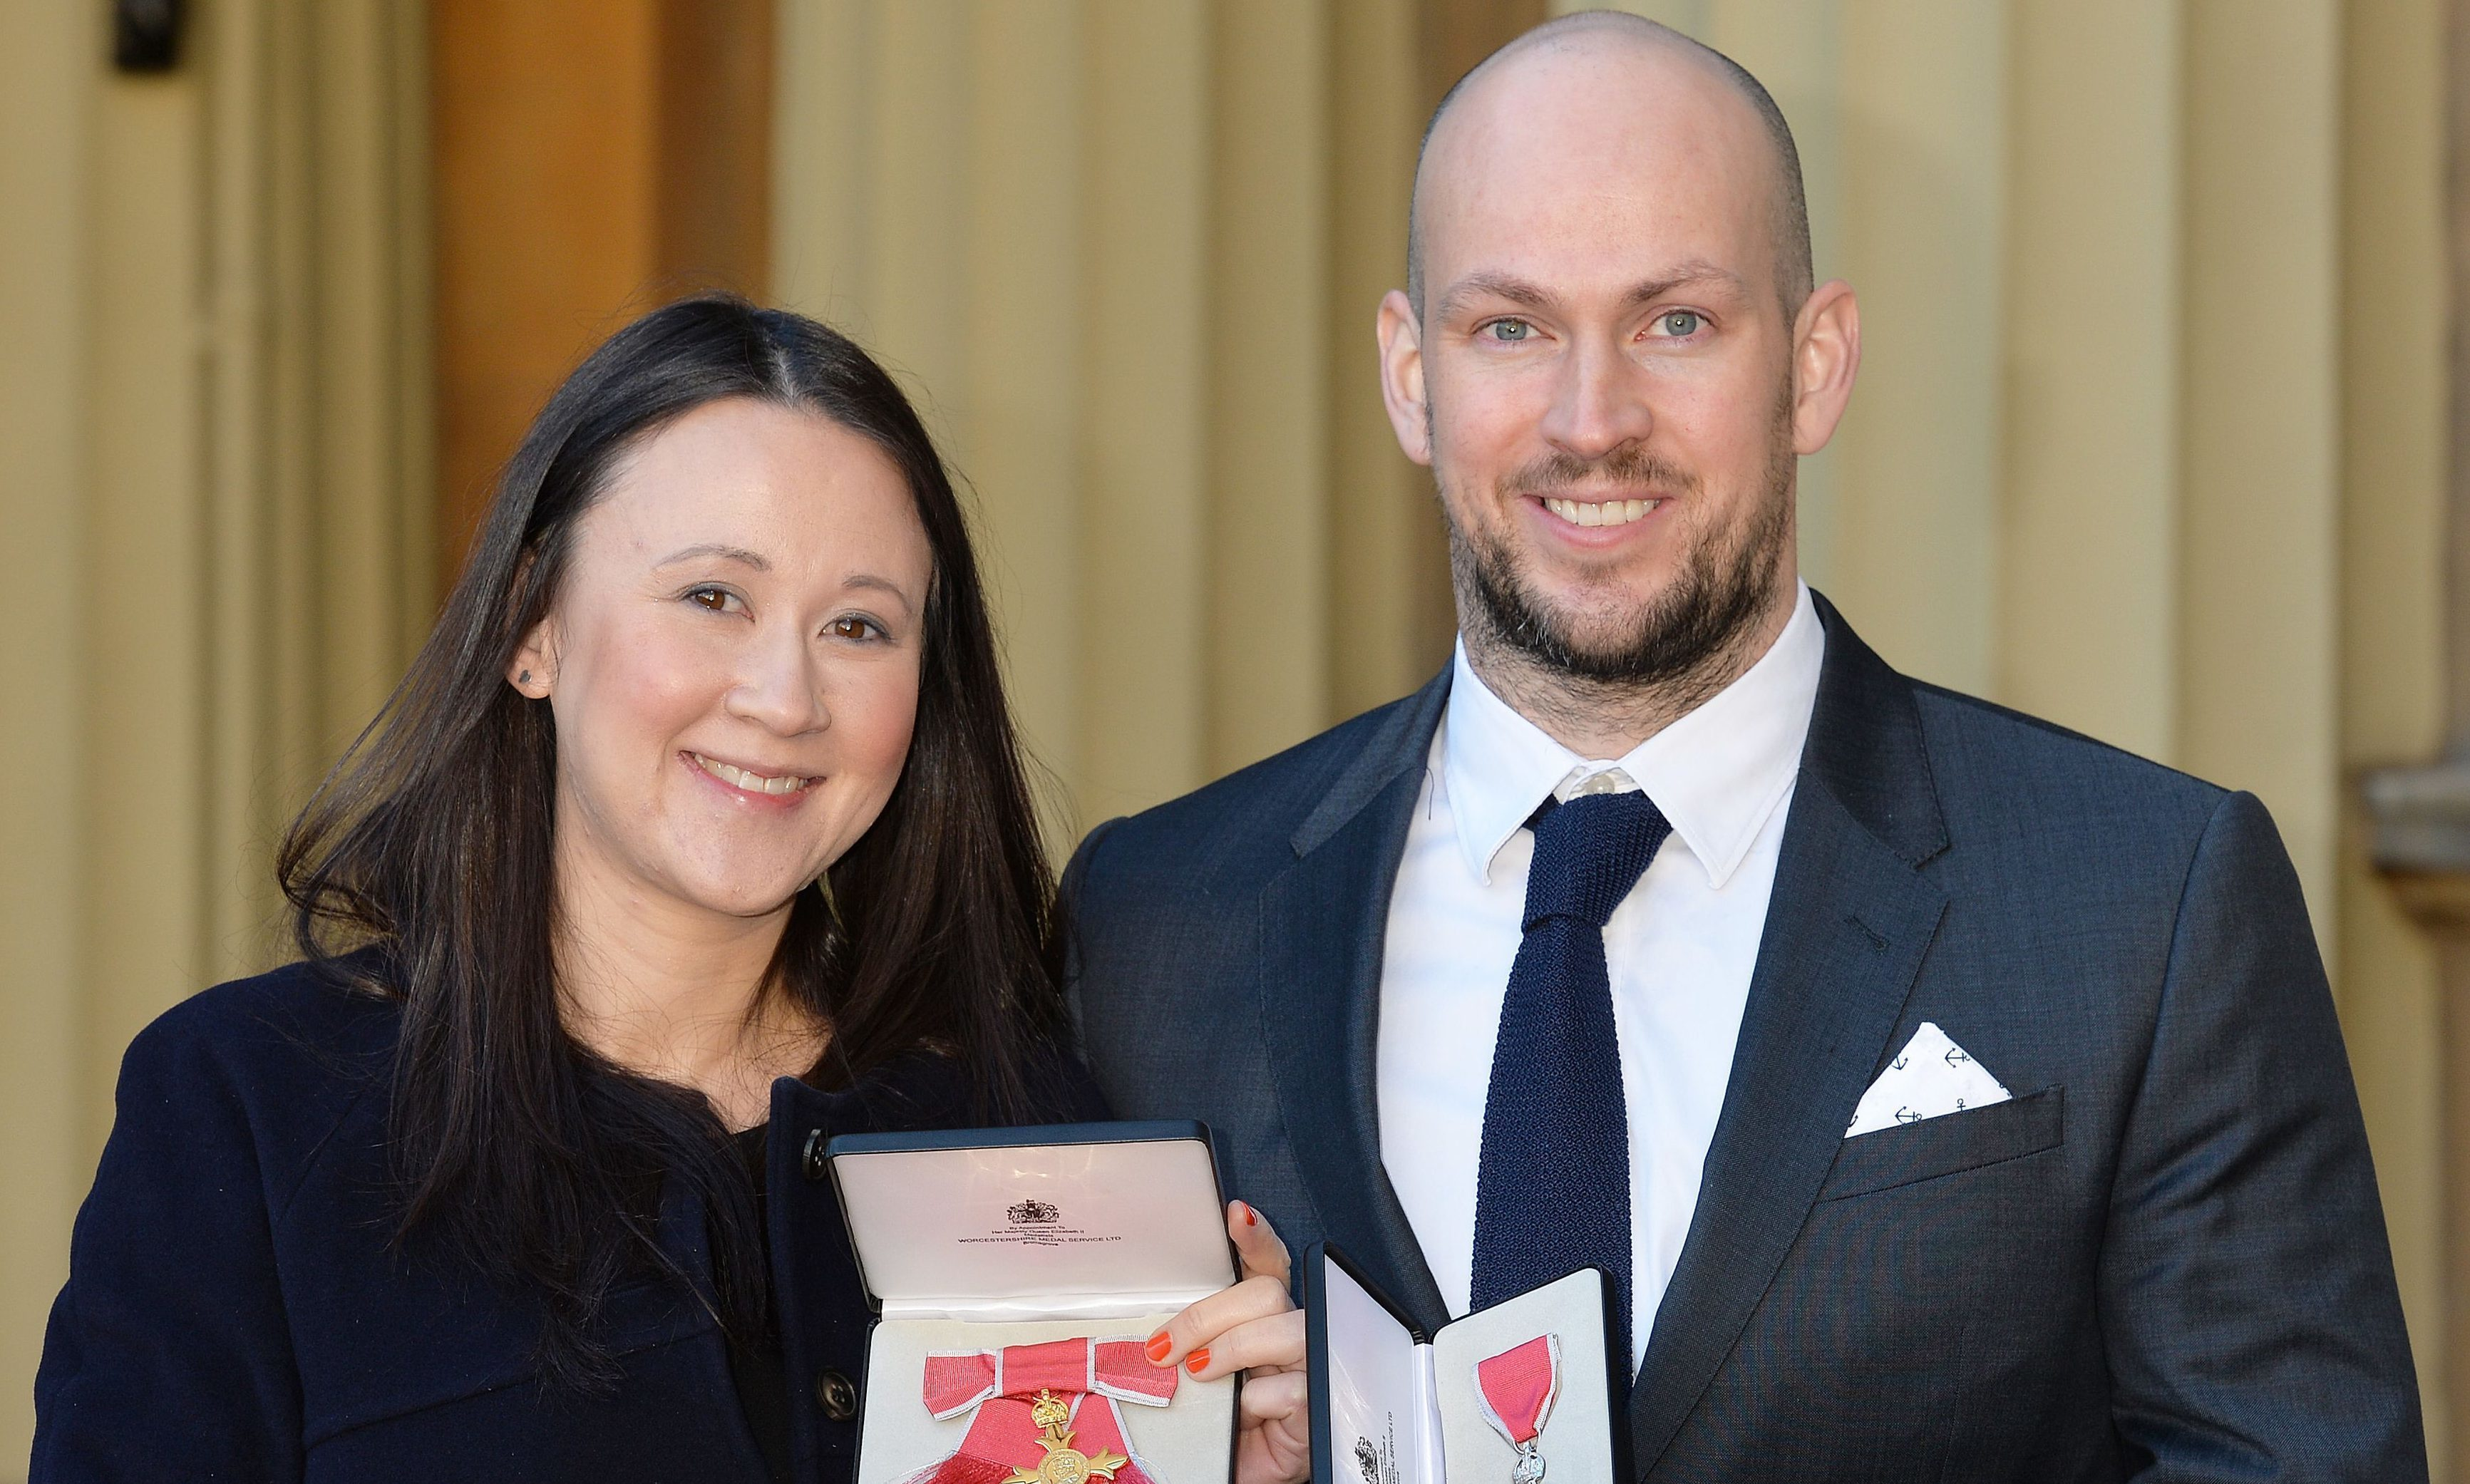 Johanna Basford with her OBE and husband James Watt with his MBE which they received from the Duke of Cambridge during an investiture ceremony at Buckingham Place.